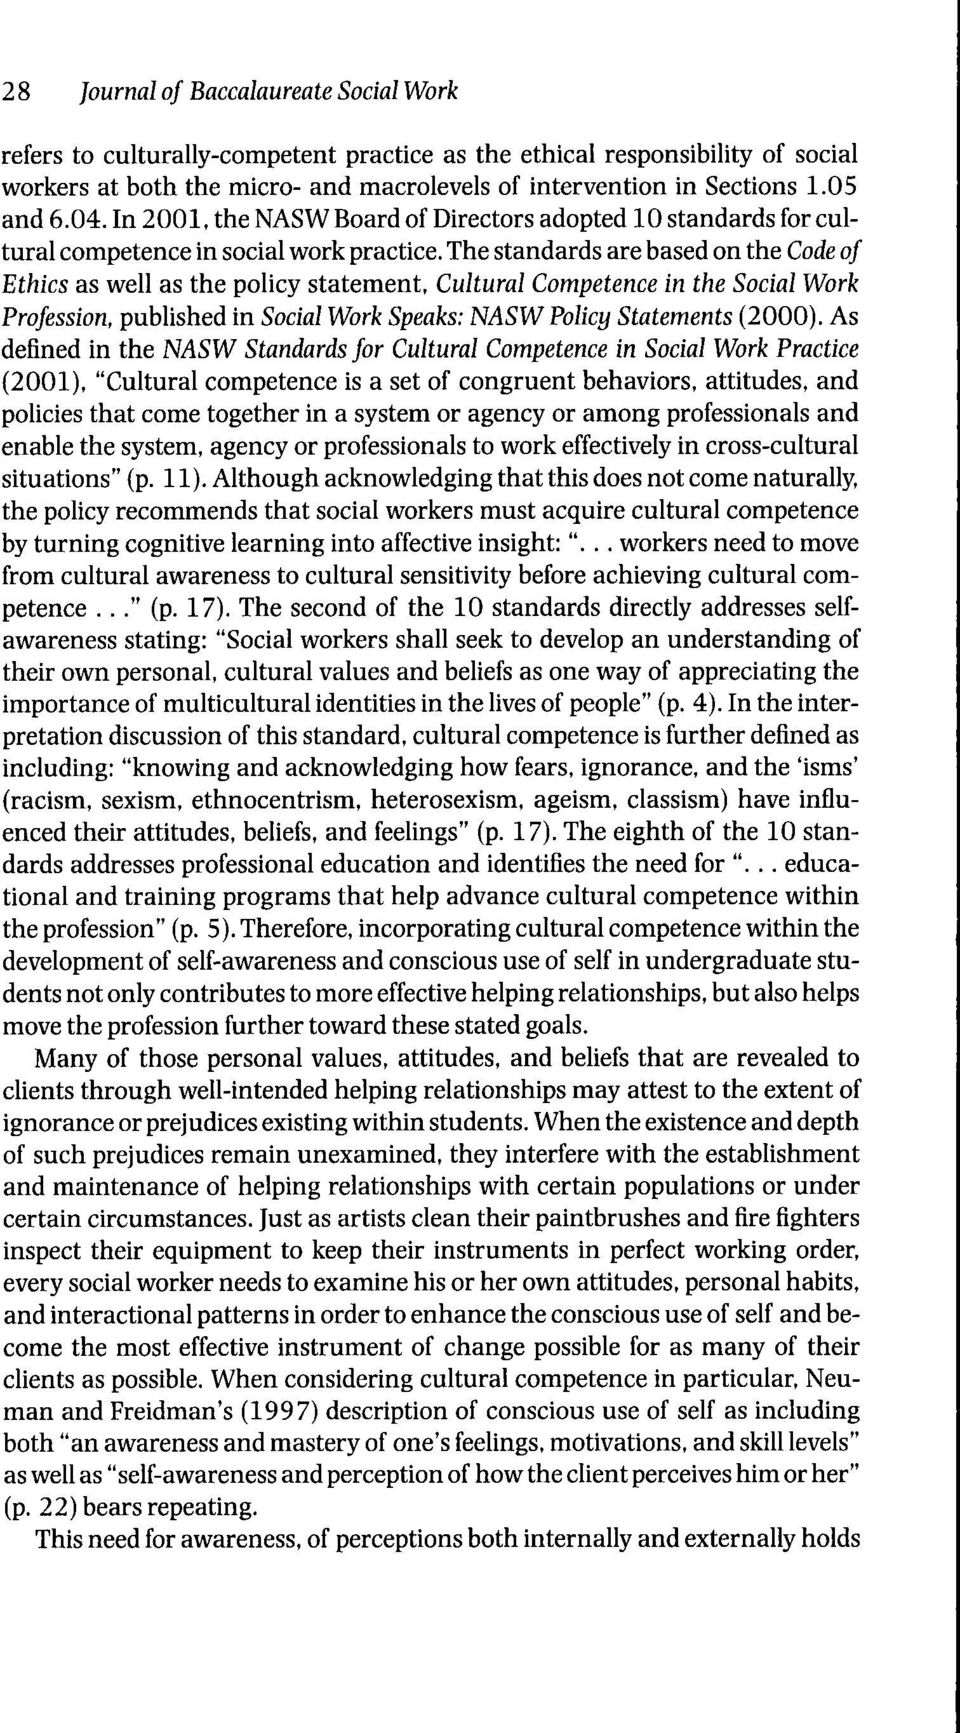 Cultural Competence in the Social Work Profession, published in Social Work Speaks: NASW Policy Statements (2000).